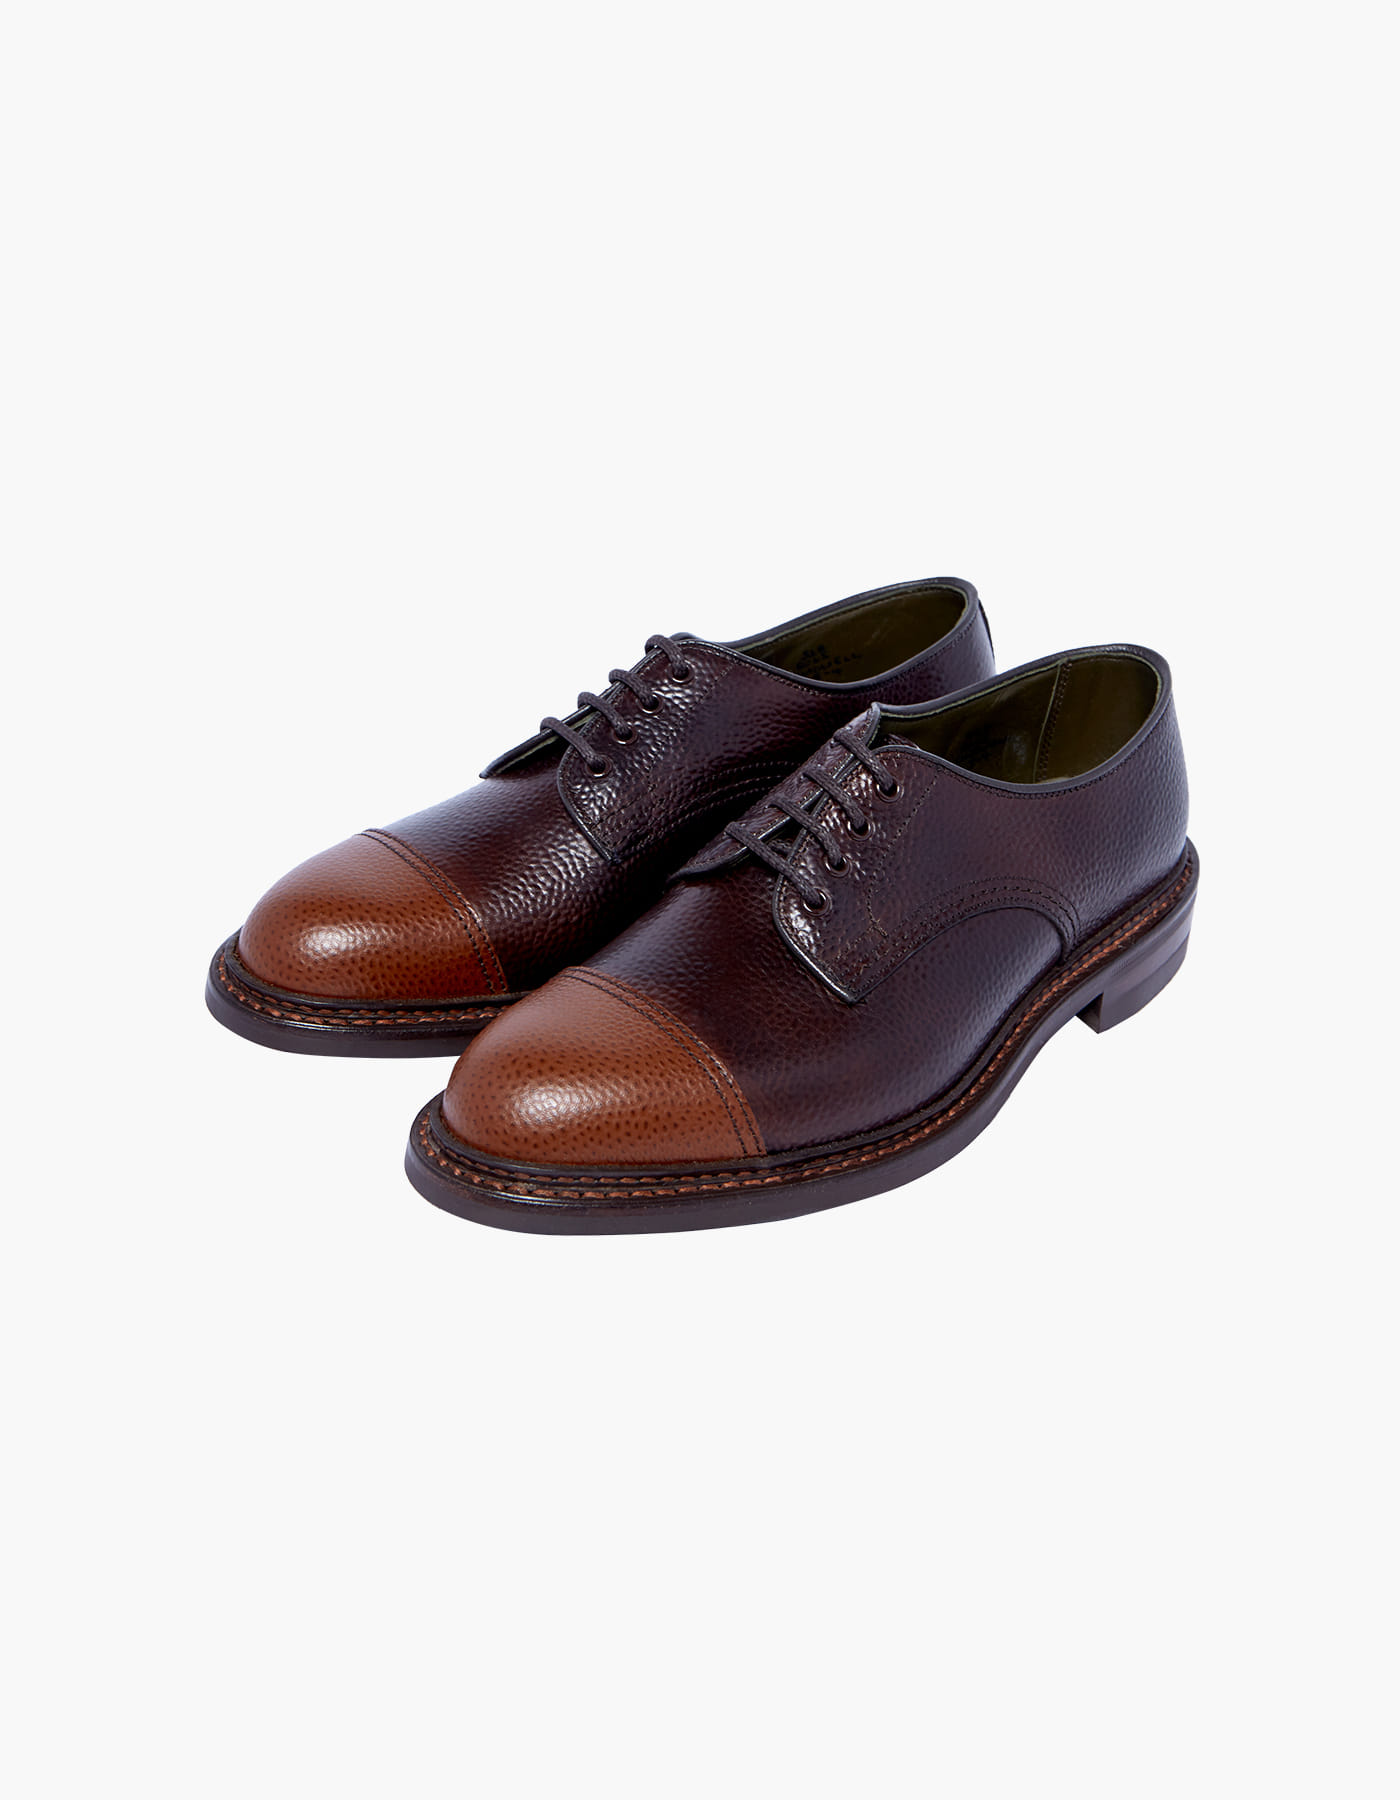 TRICKER'S X HERITAGEFLOSS CHADWICK (W) / BROWN